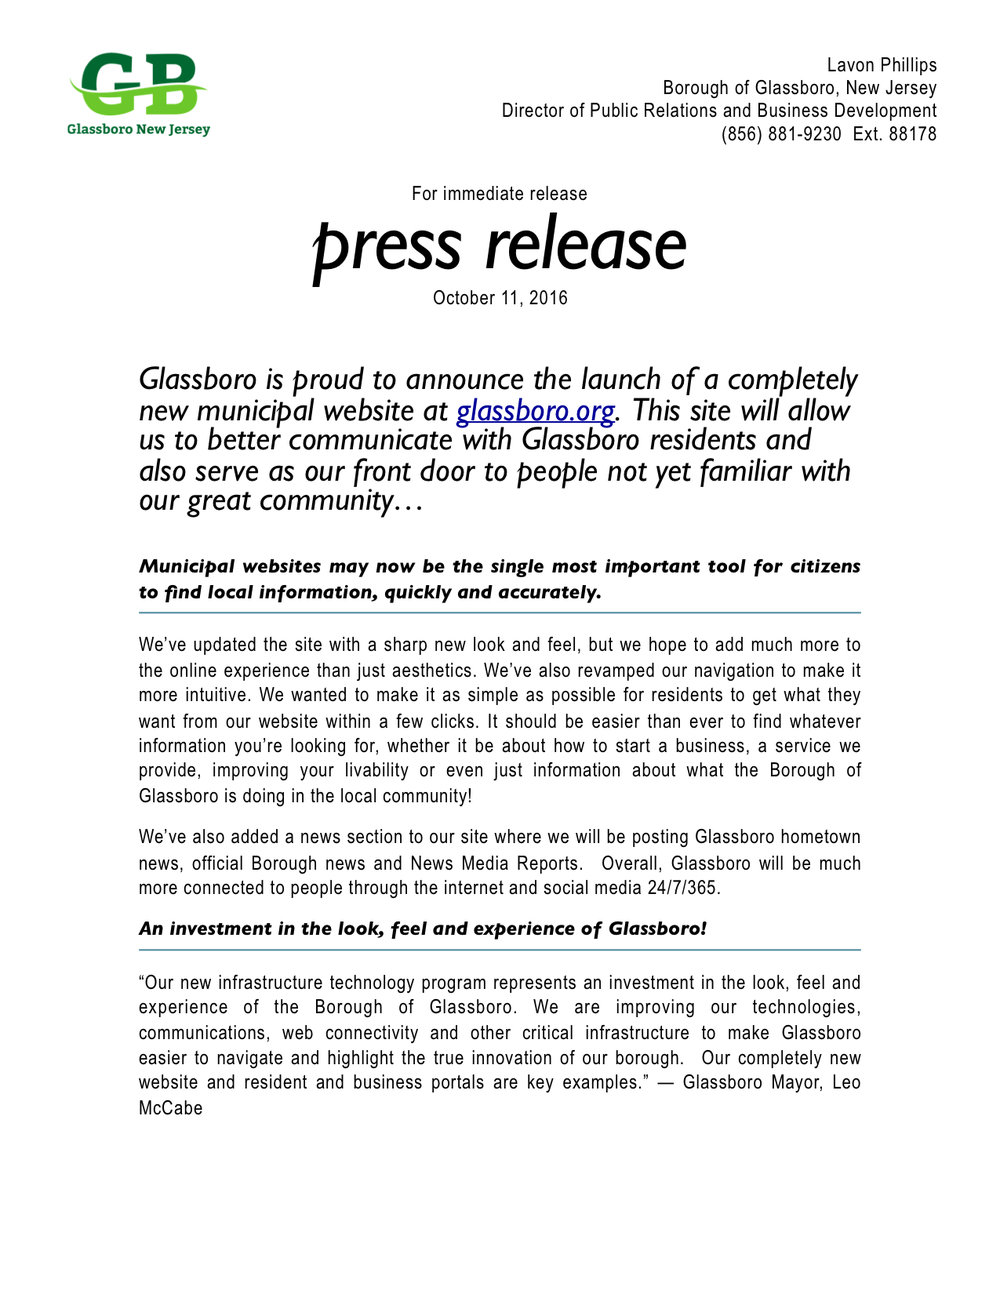 how to write a press release for an event template - glassboro is proud to announce the launch of a completely